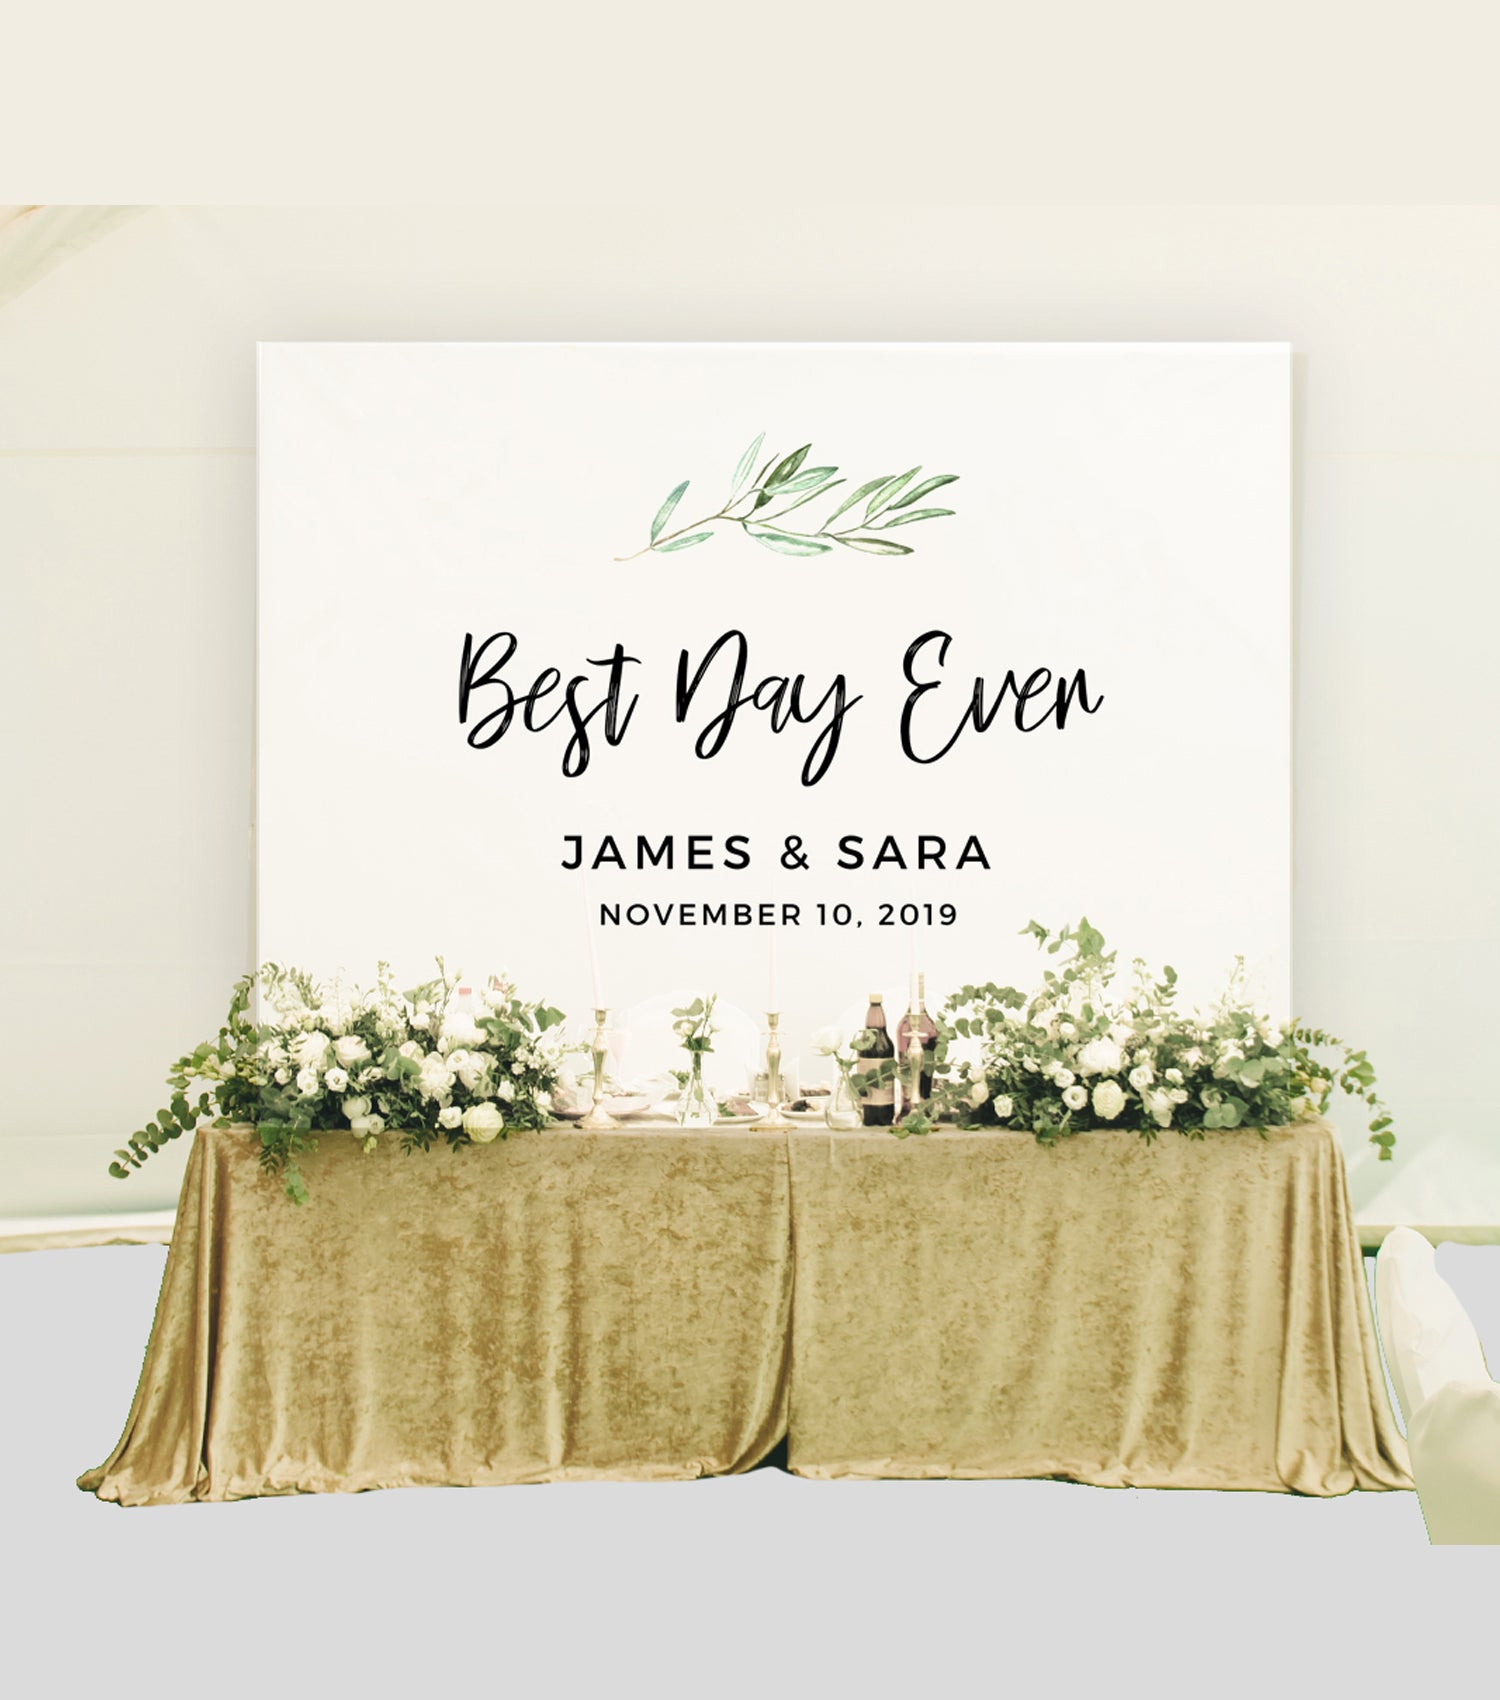 Best Time Of Day For Wedding: Best Day Ever Wedding Backdrop